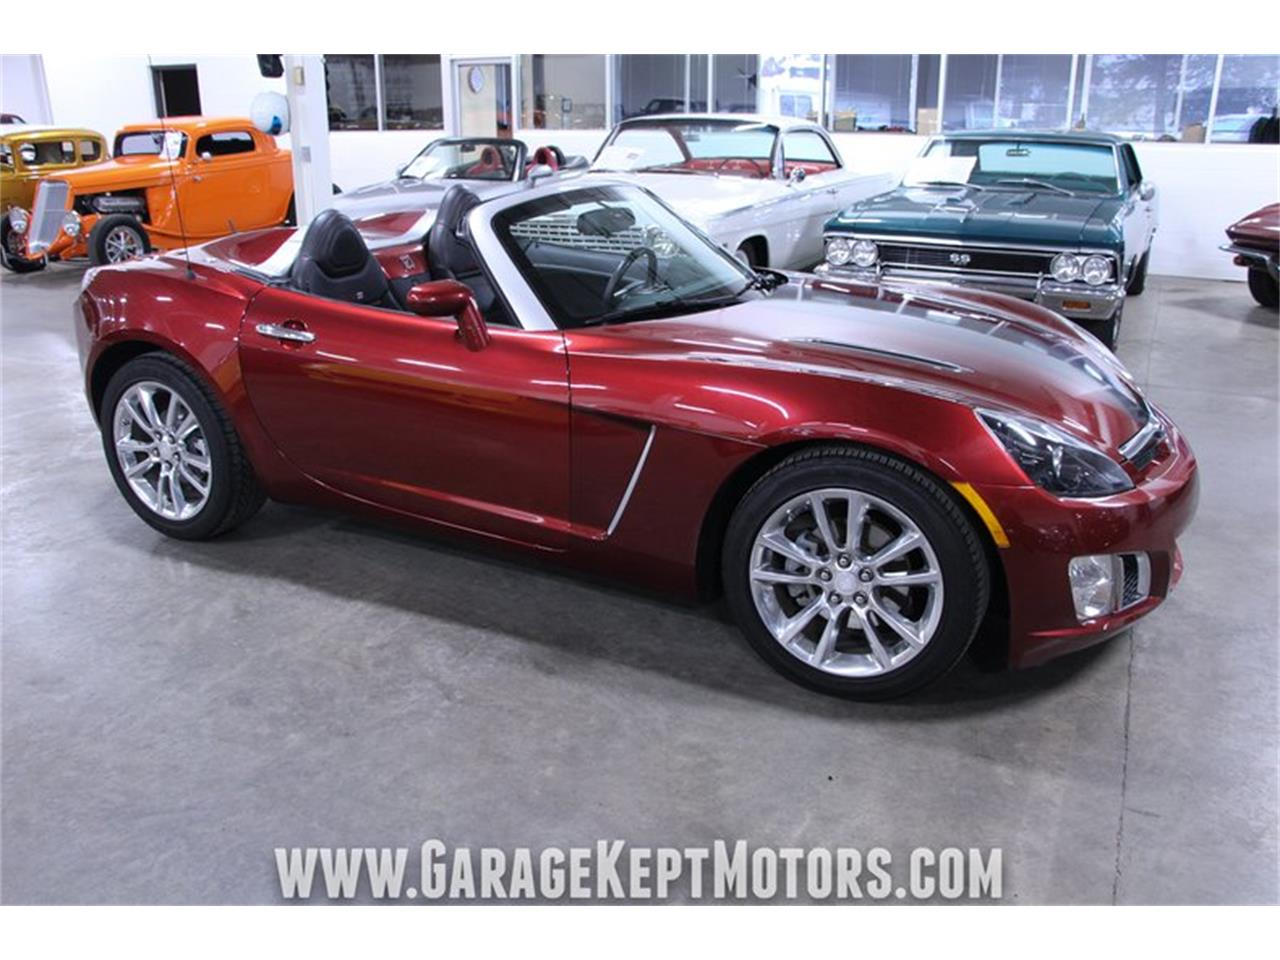 2009 Saturn Sky for sale in Grand Rapids, MI – photo 27